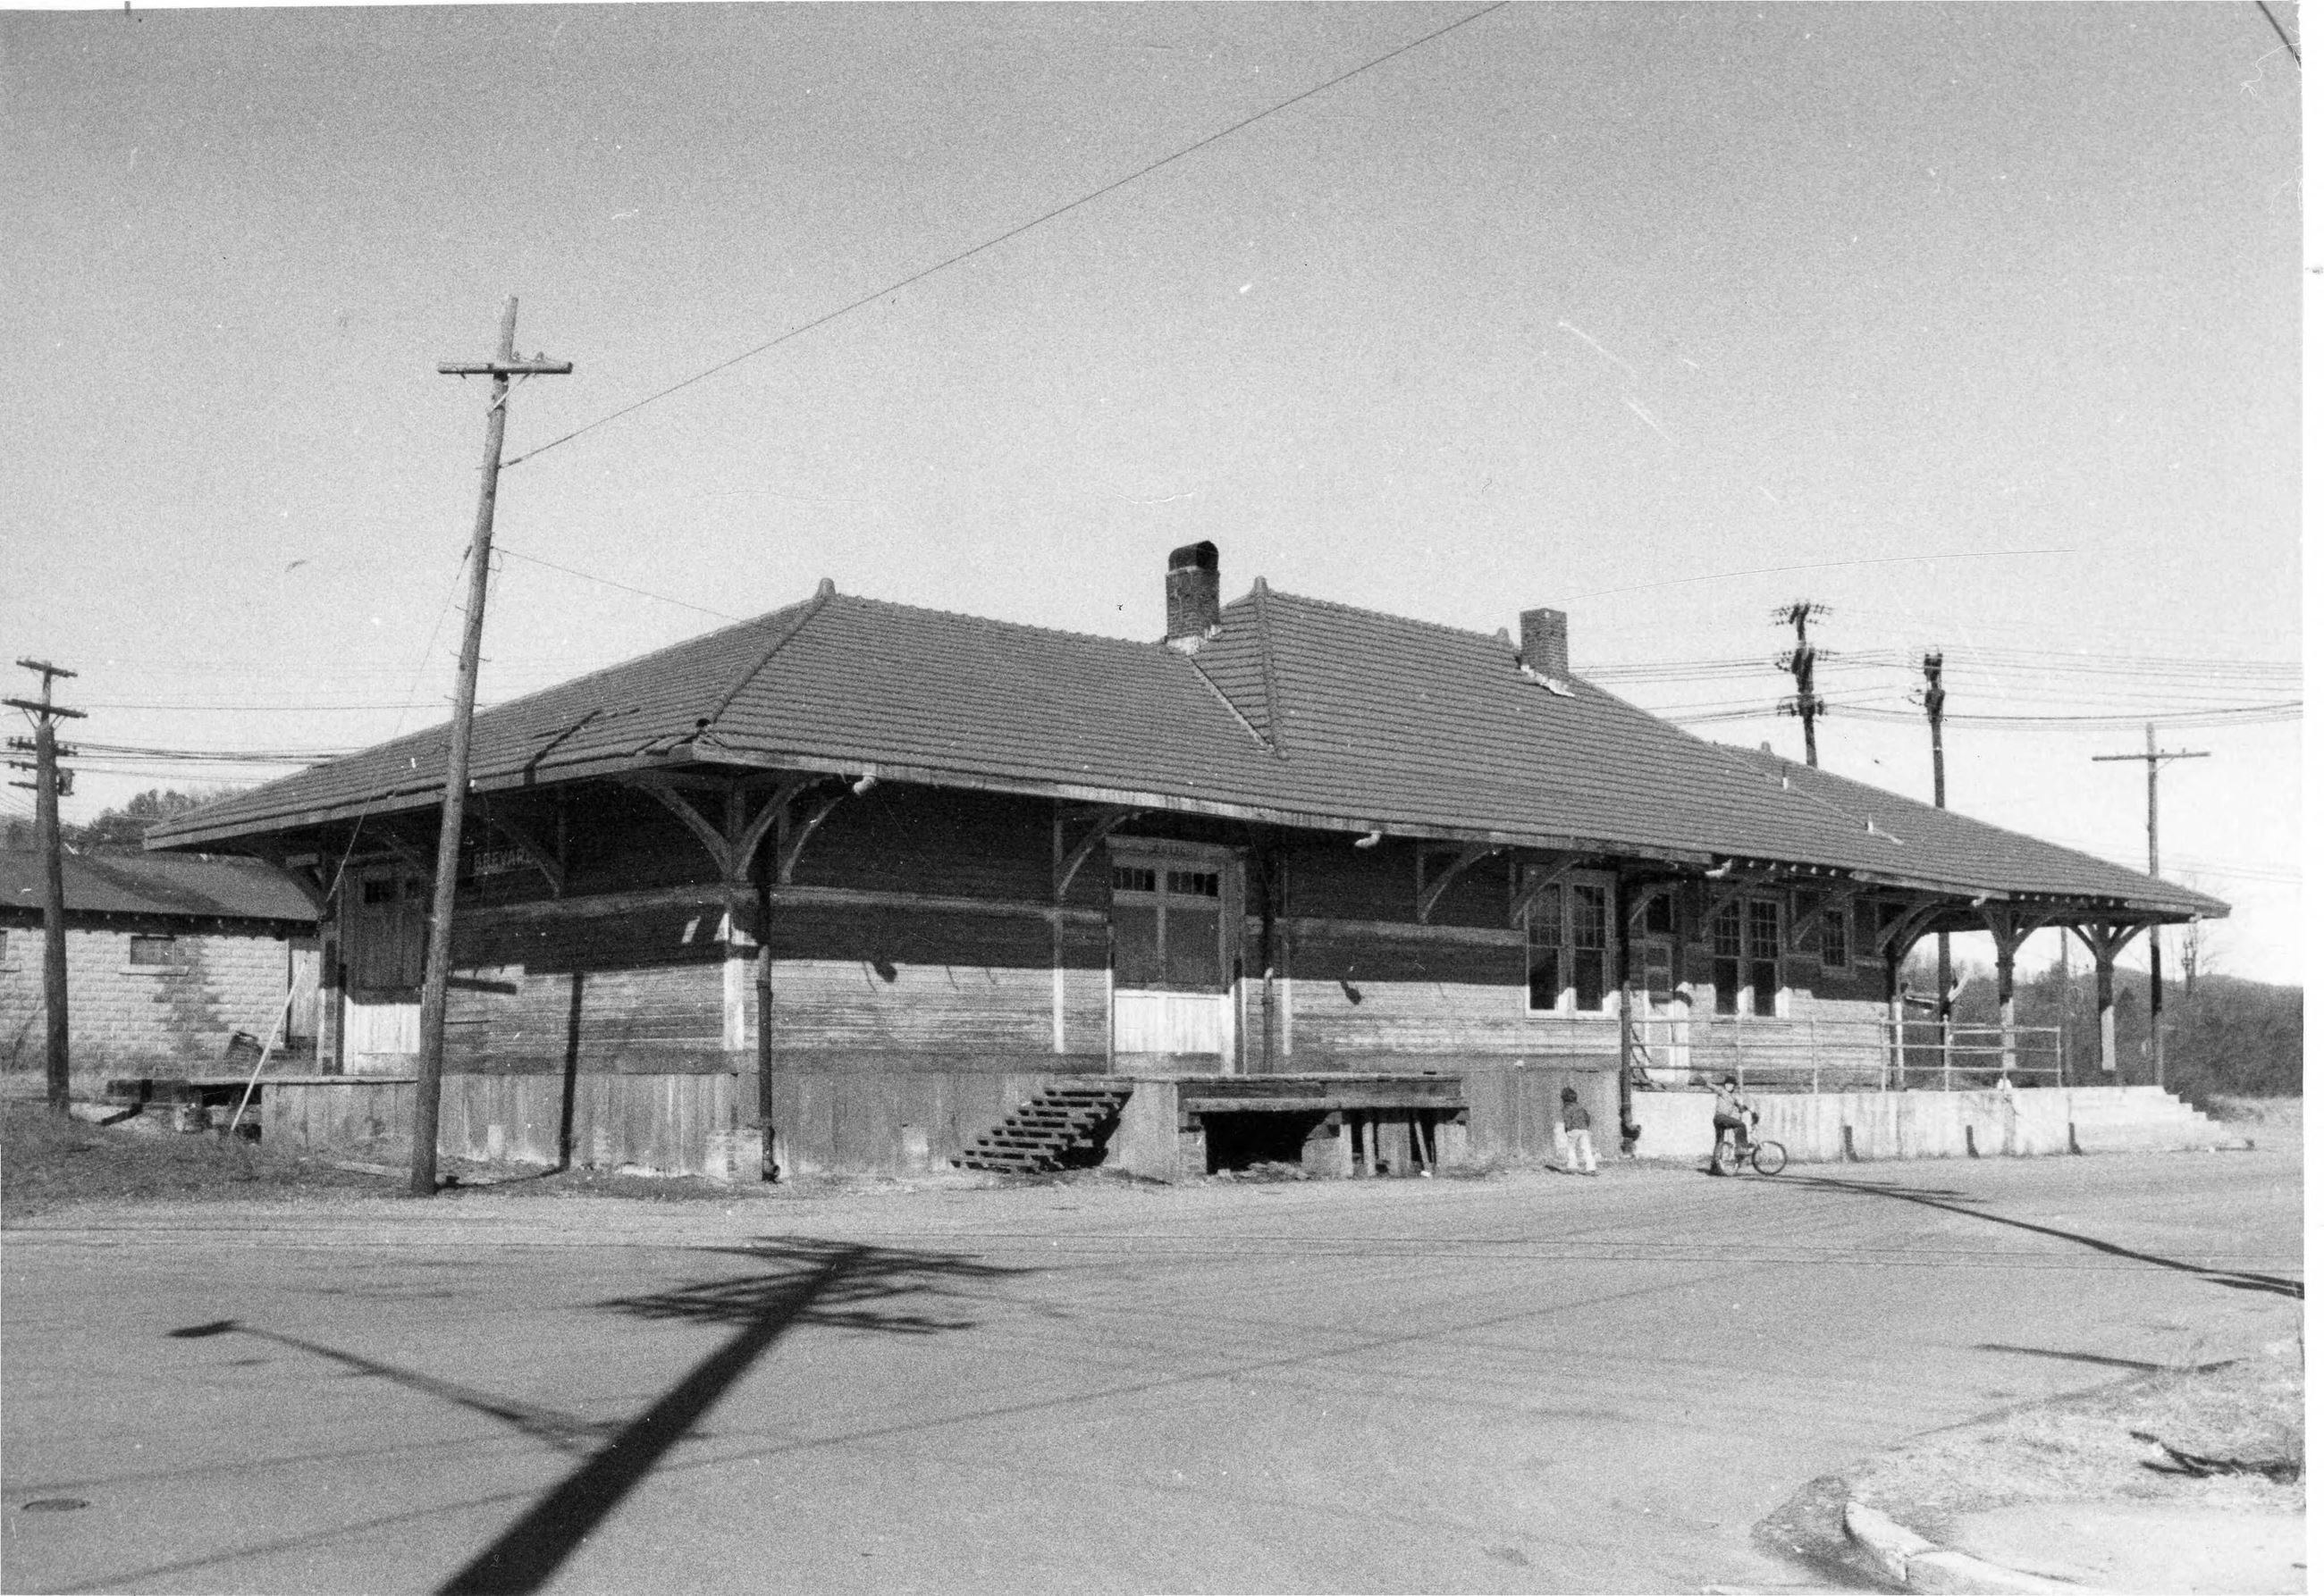 Black and white photo of an old train depot